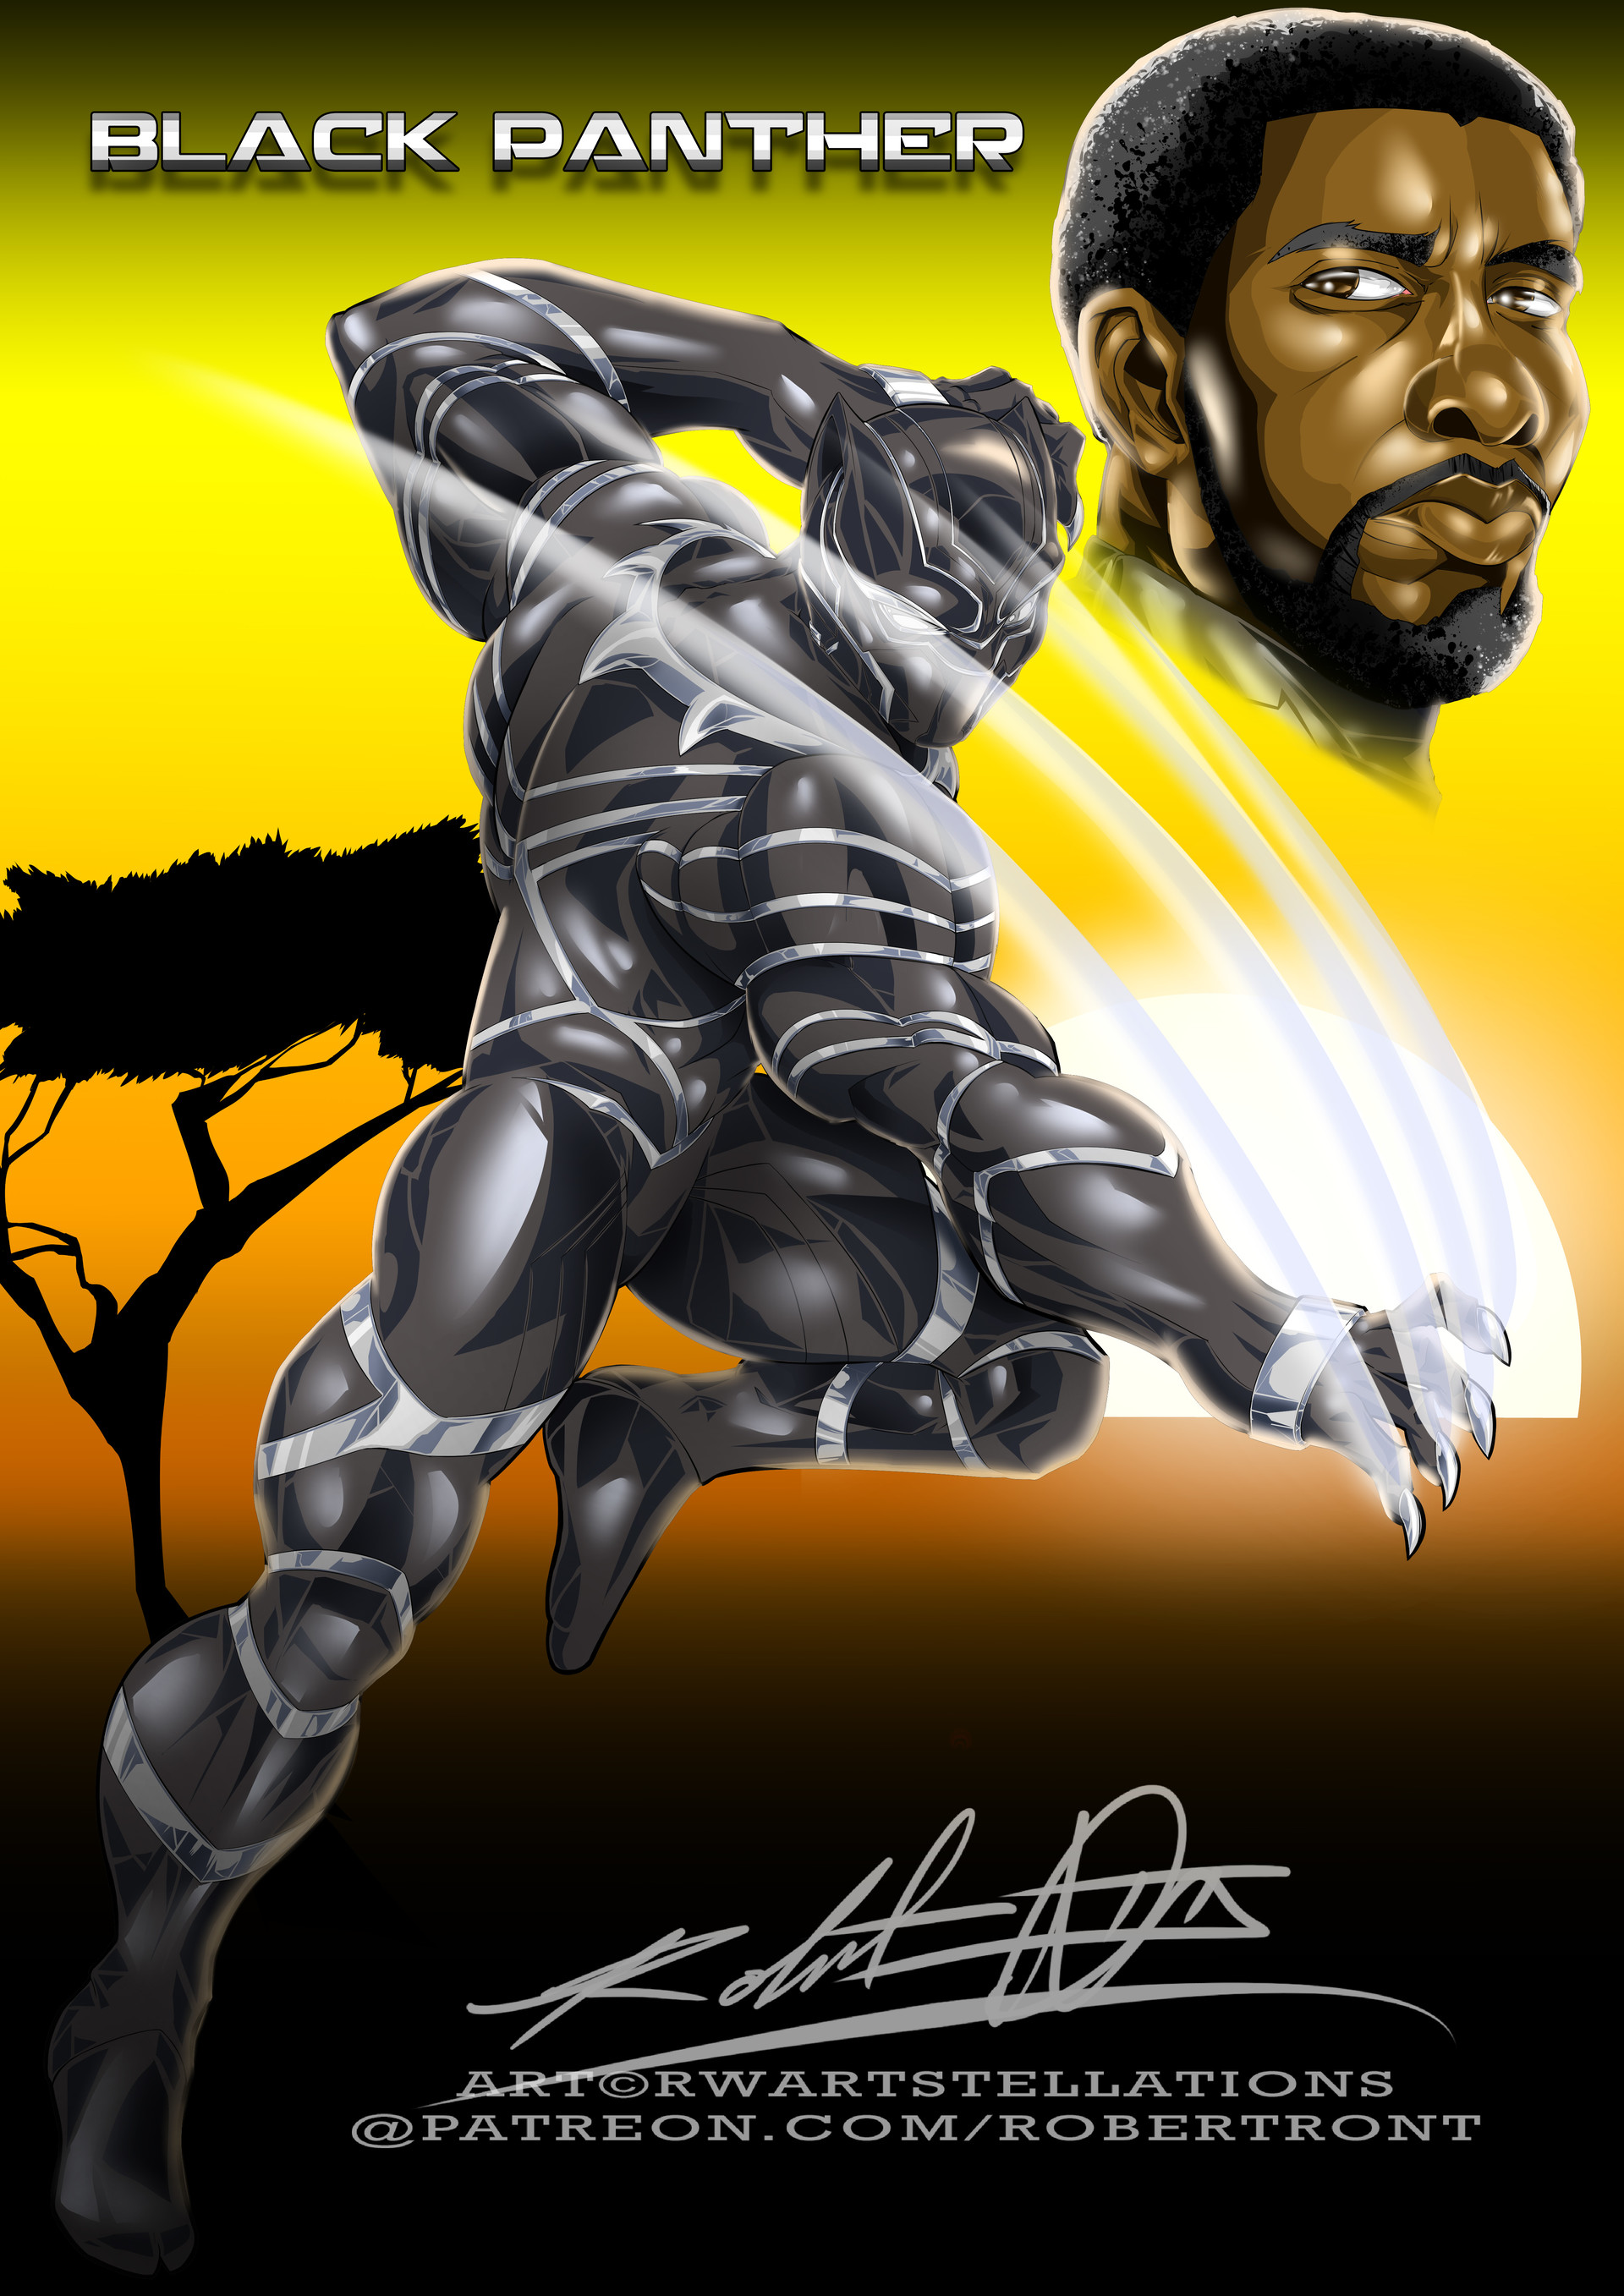 Robert e wilson black panther